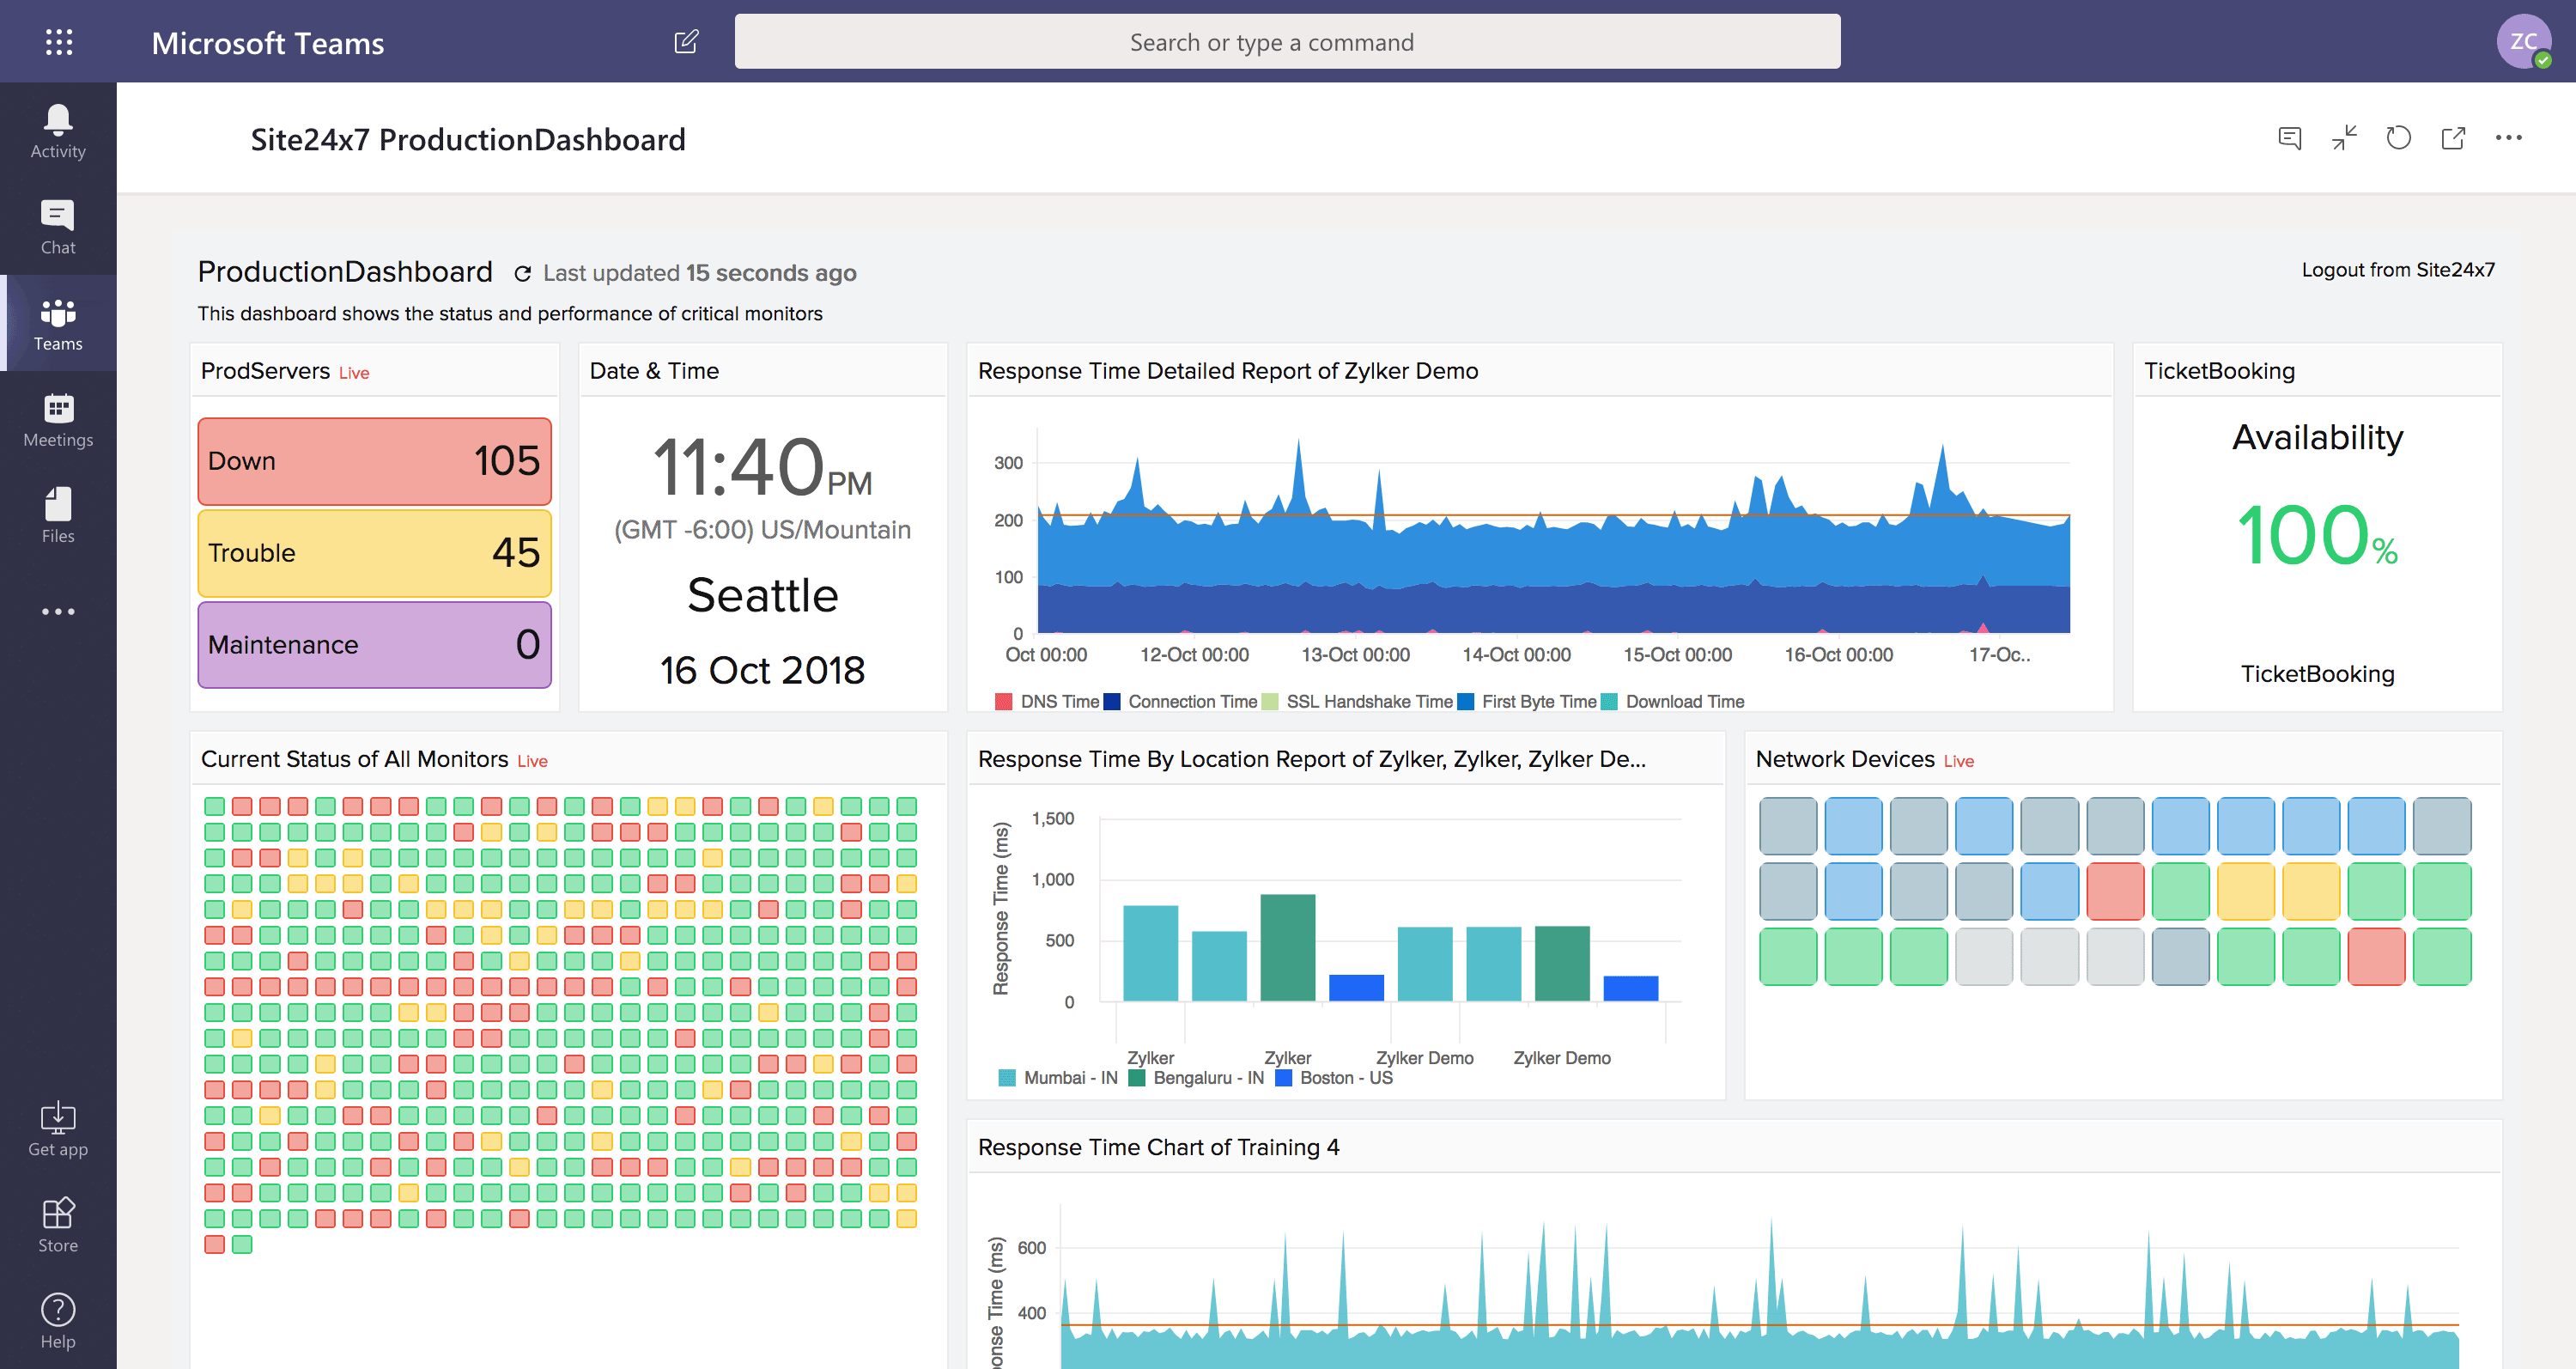 A Microsoft Teams channel showing a Site24x7 custom dashboard